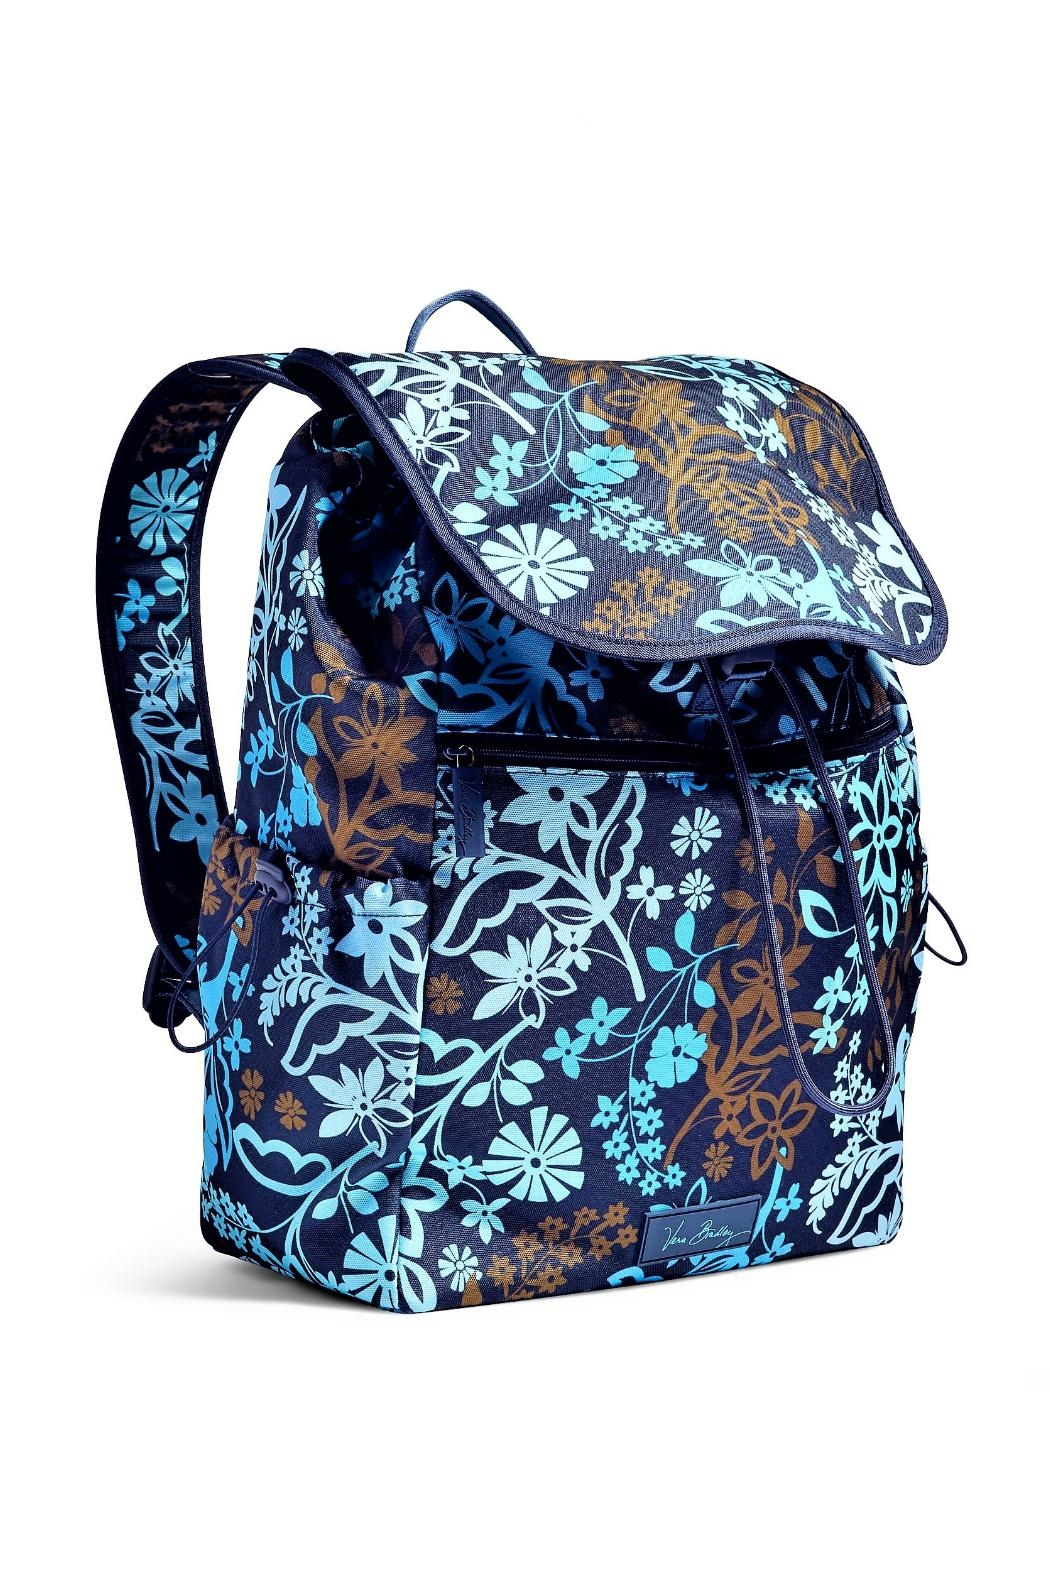 Vera Bradley Java Floral Drawstring Backpack - Front Full Image